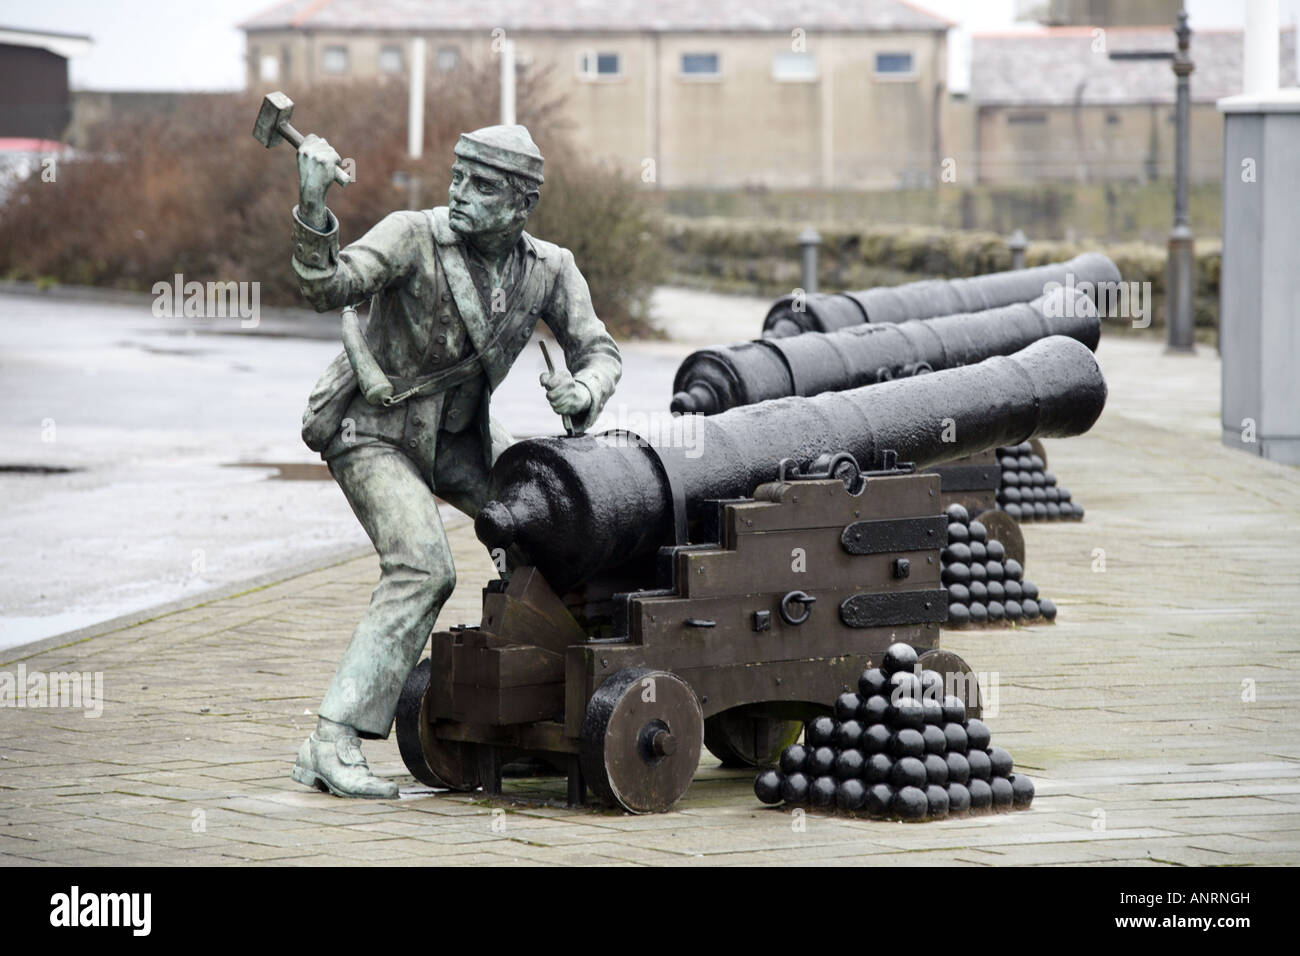 Sculpture commemorating the infamous John Paul Jones raid on Whitehaven - Stock Image